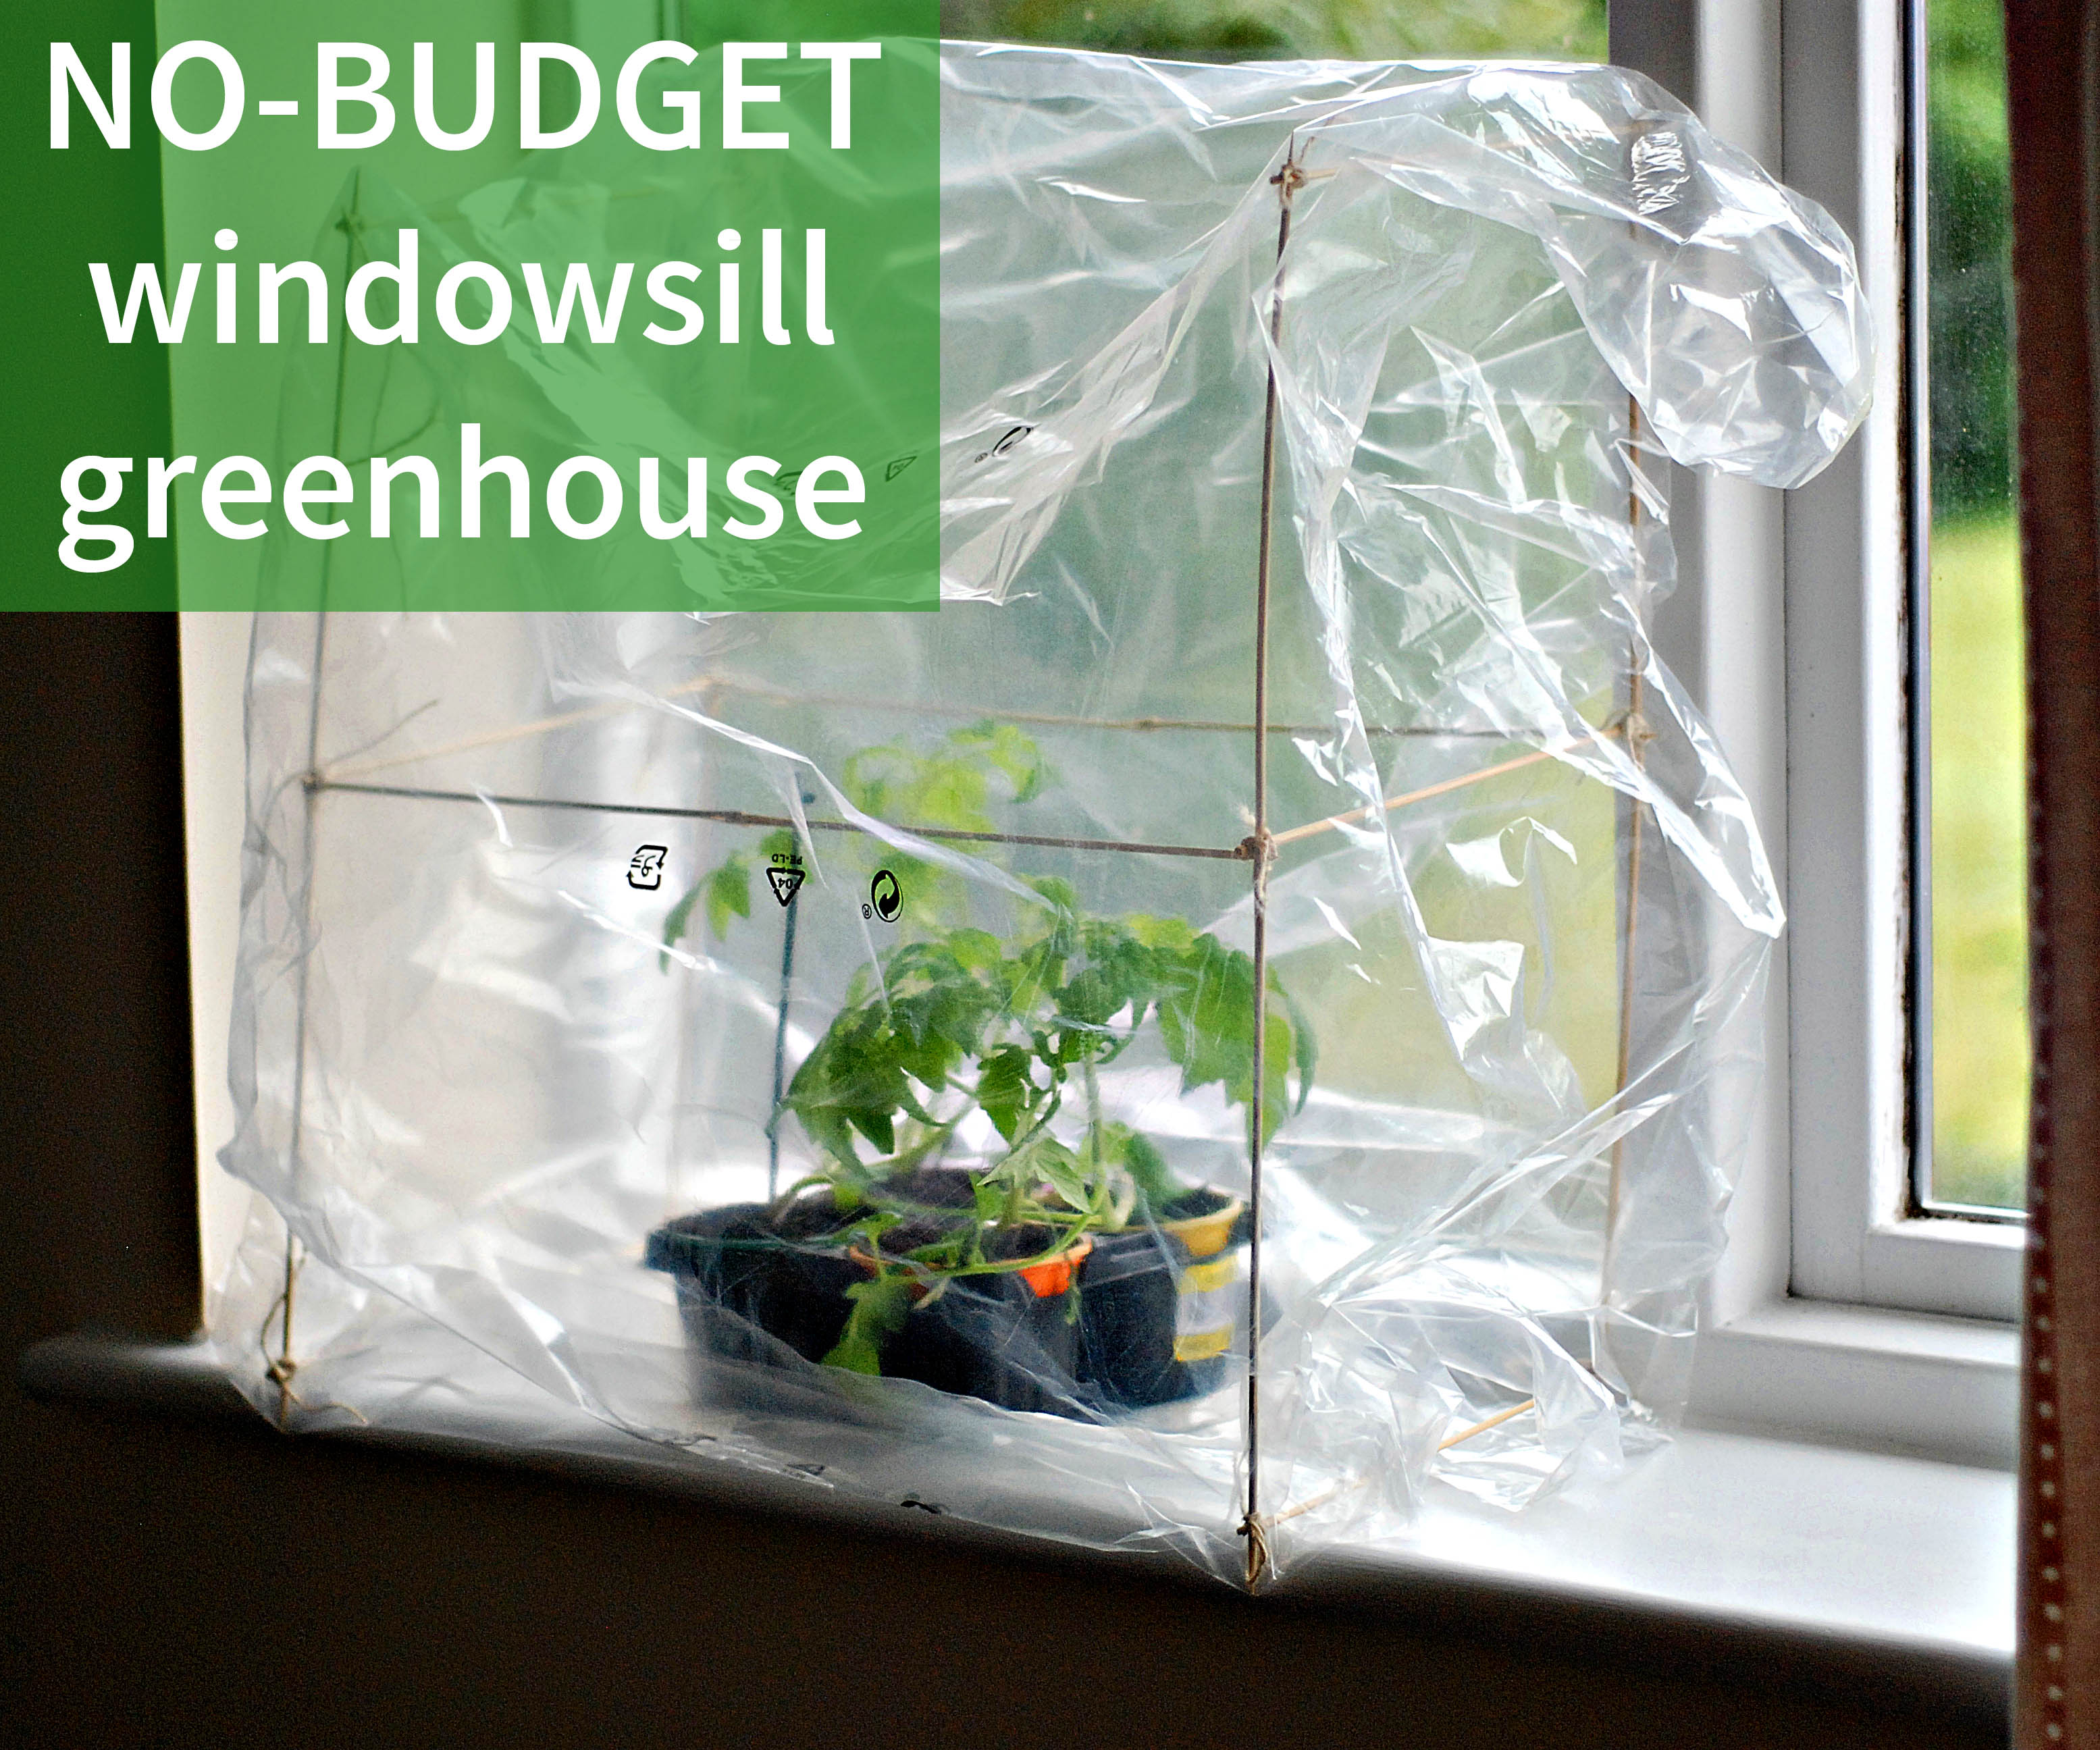 Picture of No-Budget Windowsill Greenhouse